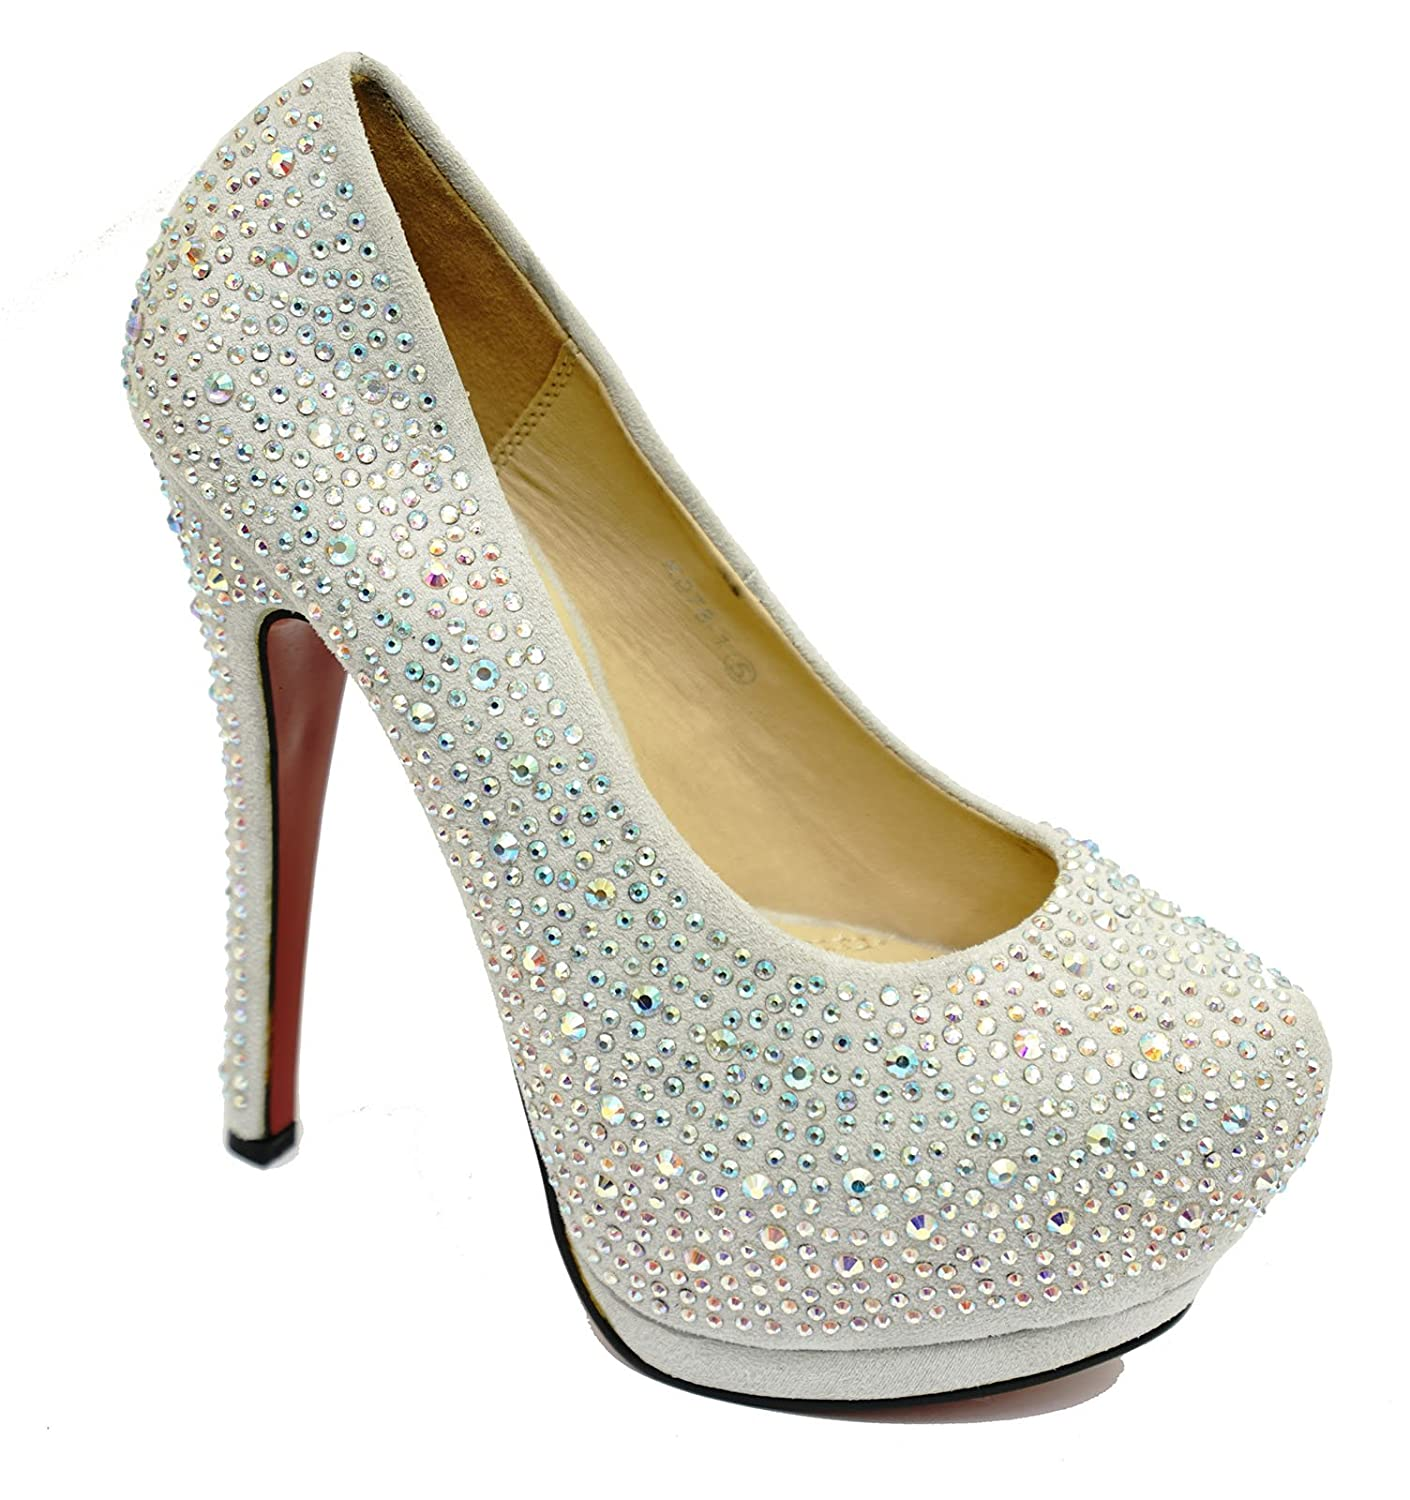 HeelzSoHigh Ladies Silver Diamante Stiletto High Heel Platform Slip-On  Court Shoes Sizes 3-8: Amazon.co.uk: Shoes & Bags